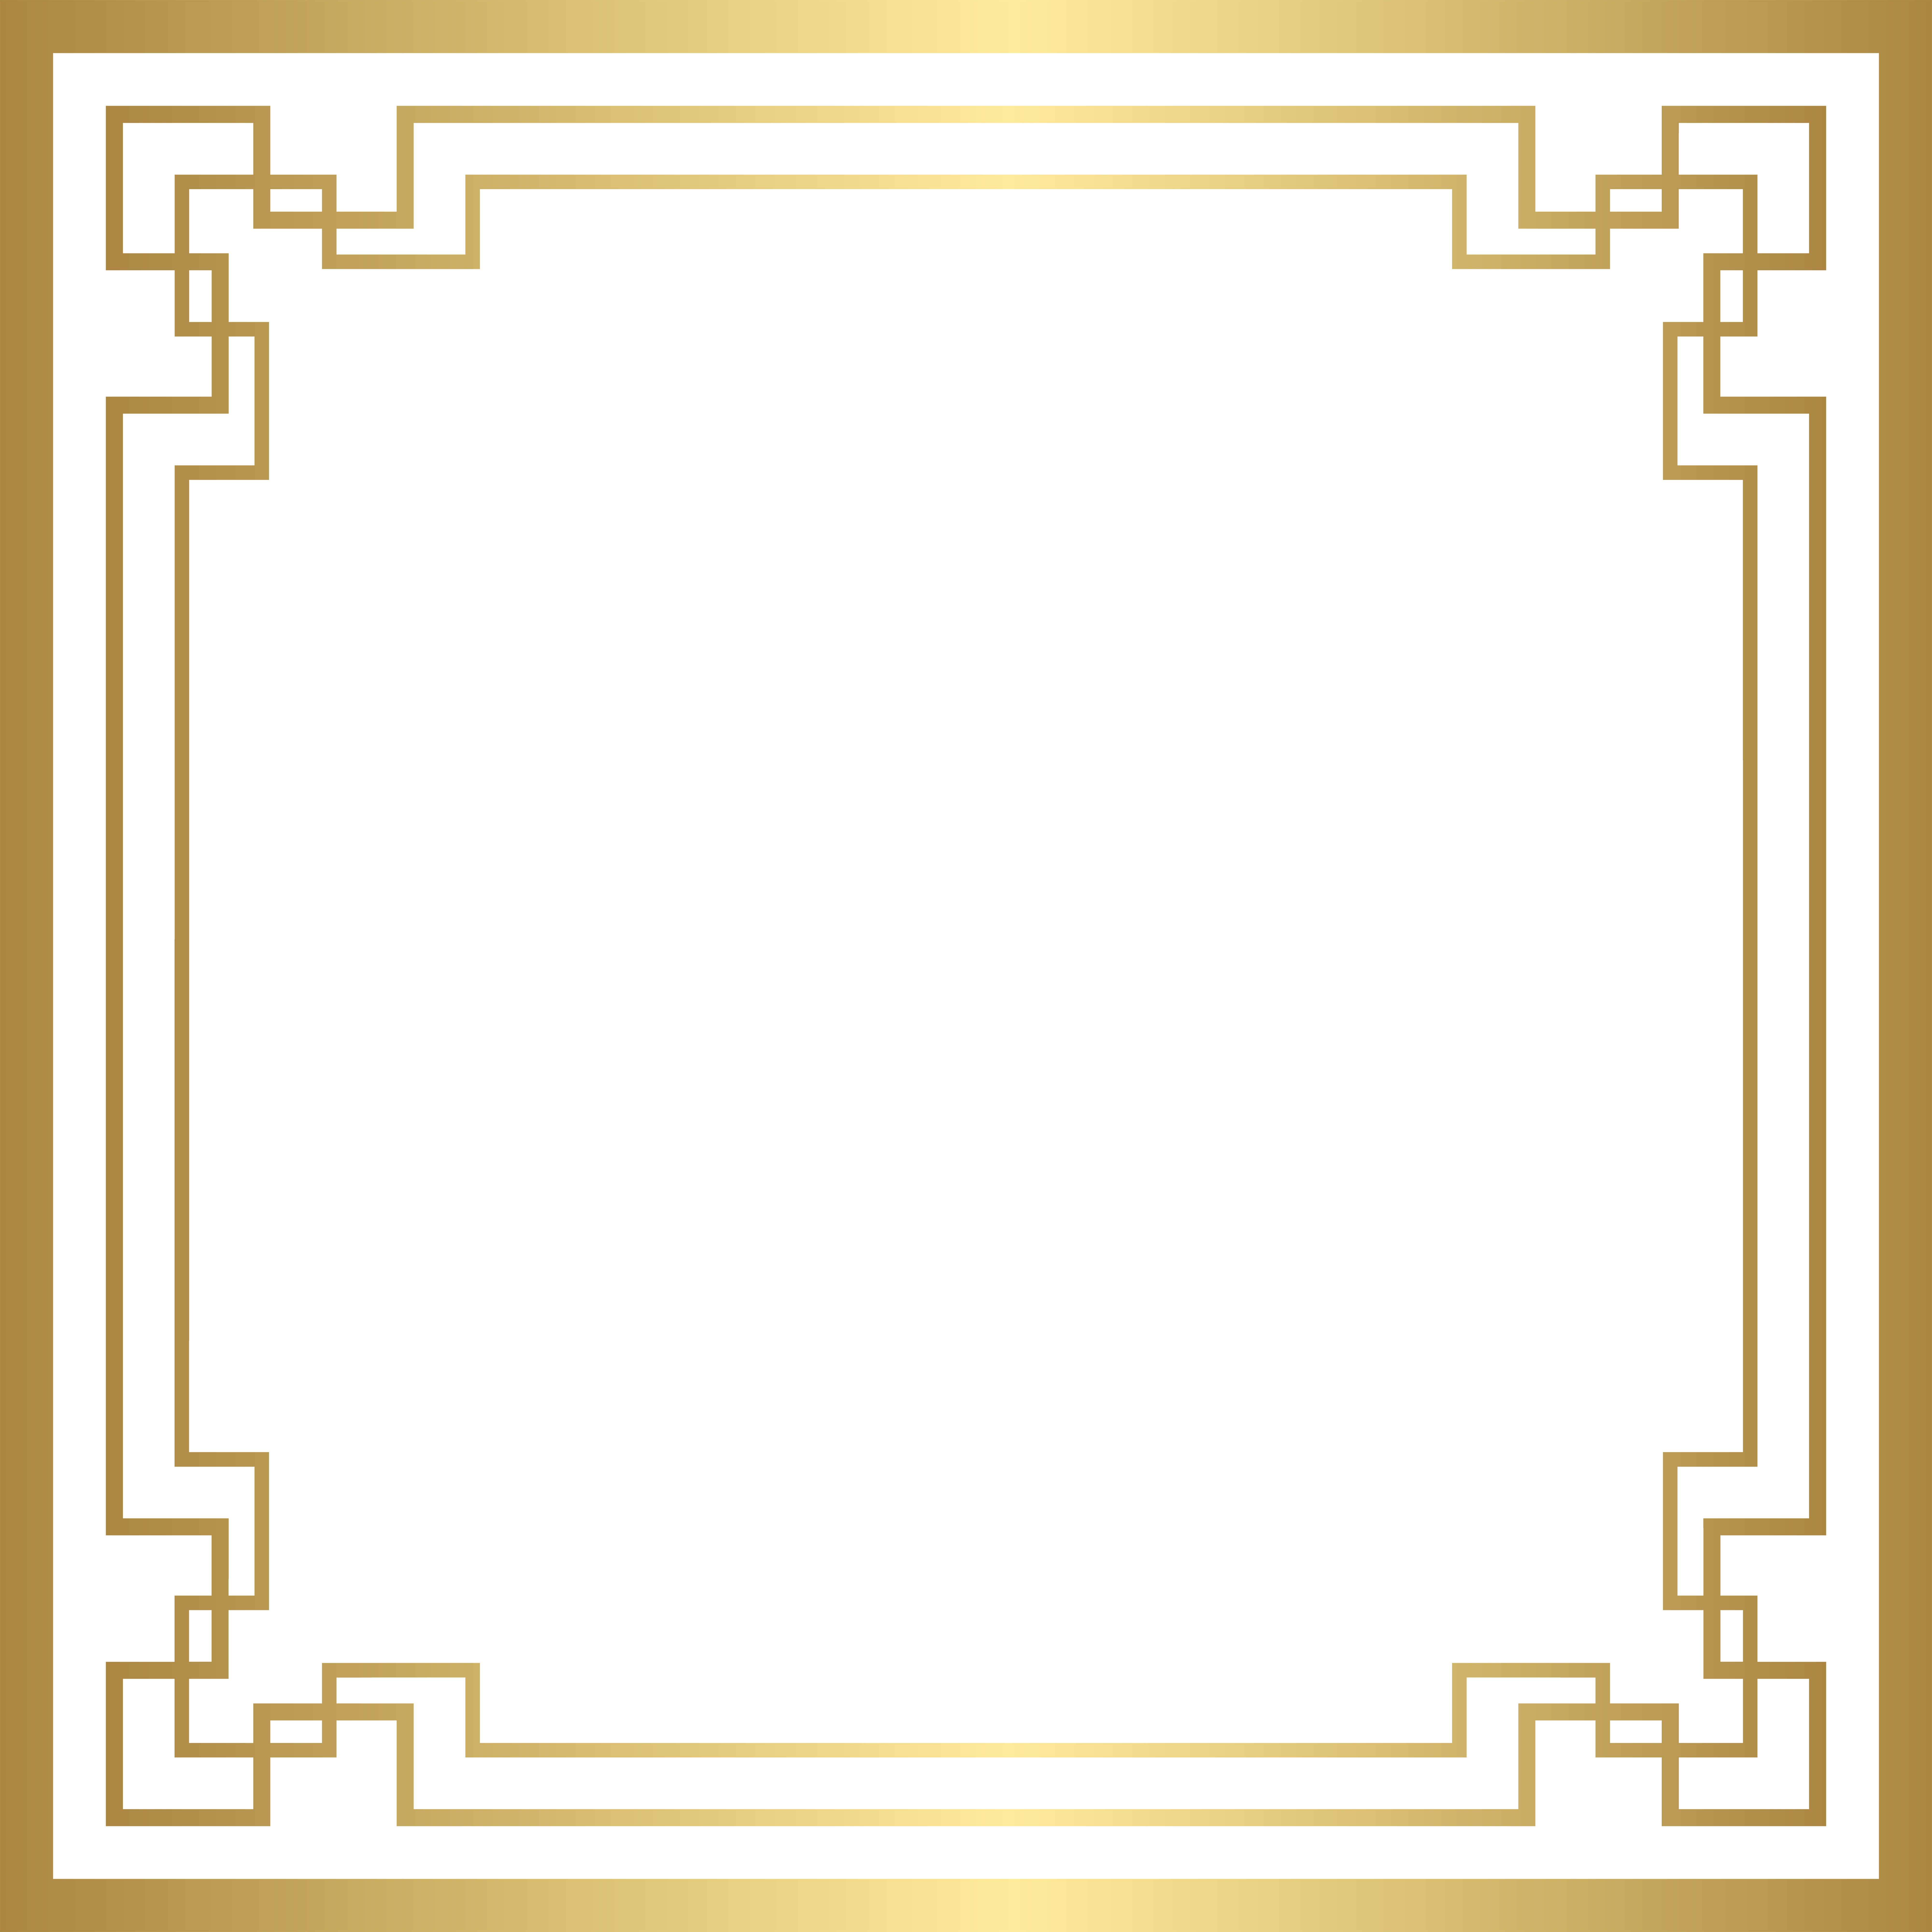 Png interlaced photoshop. Border deco frame gold